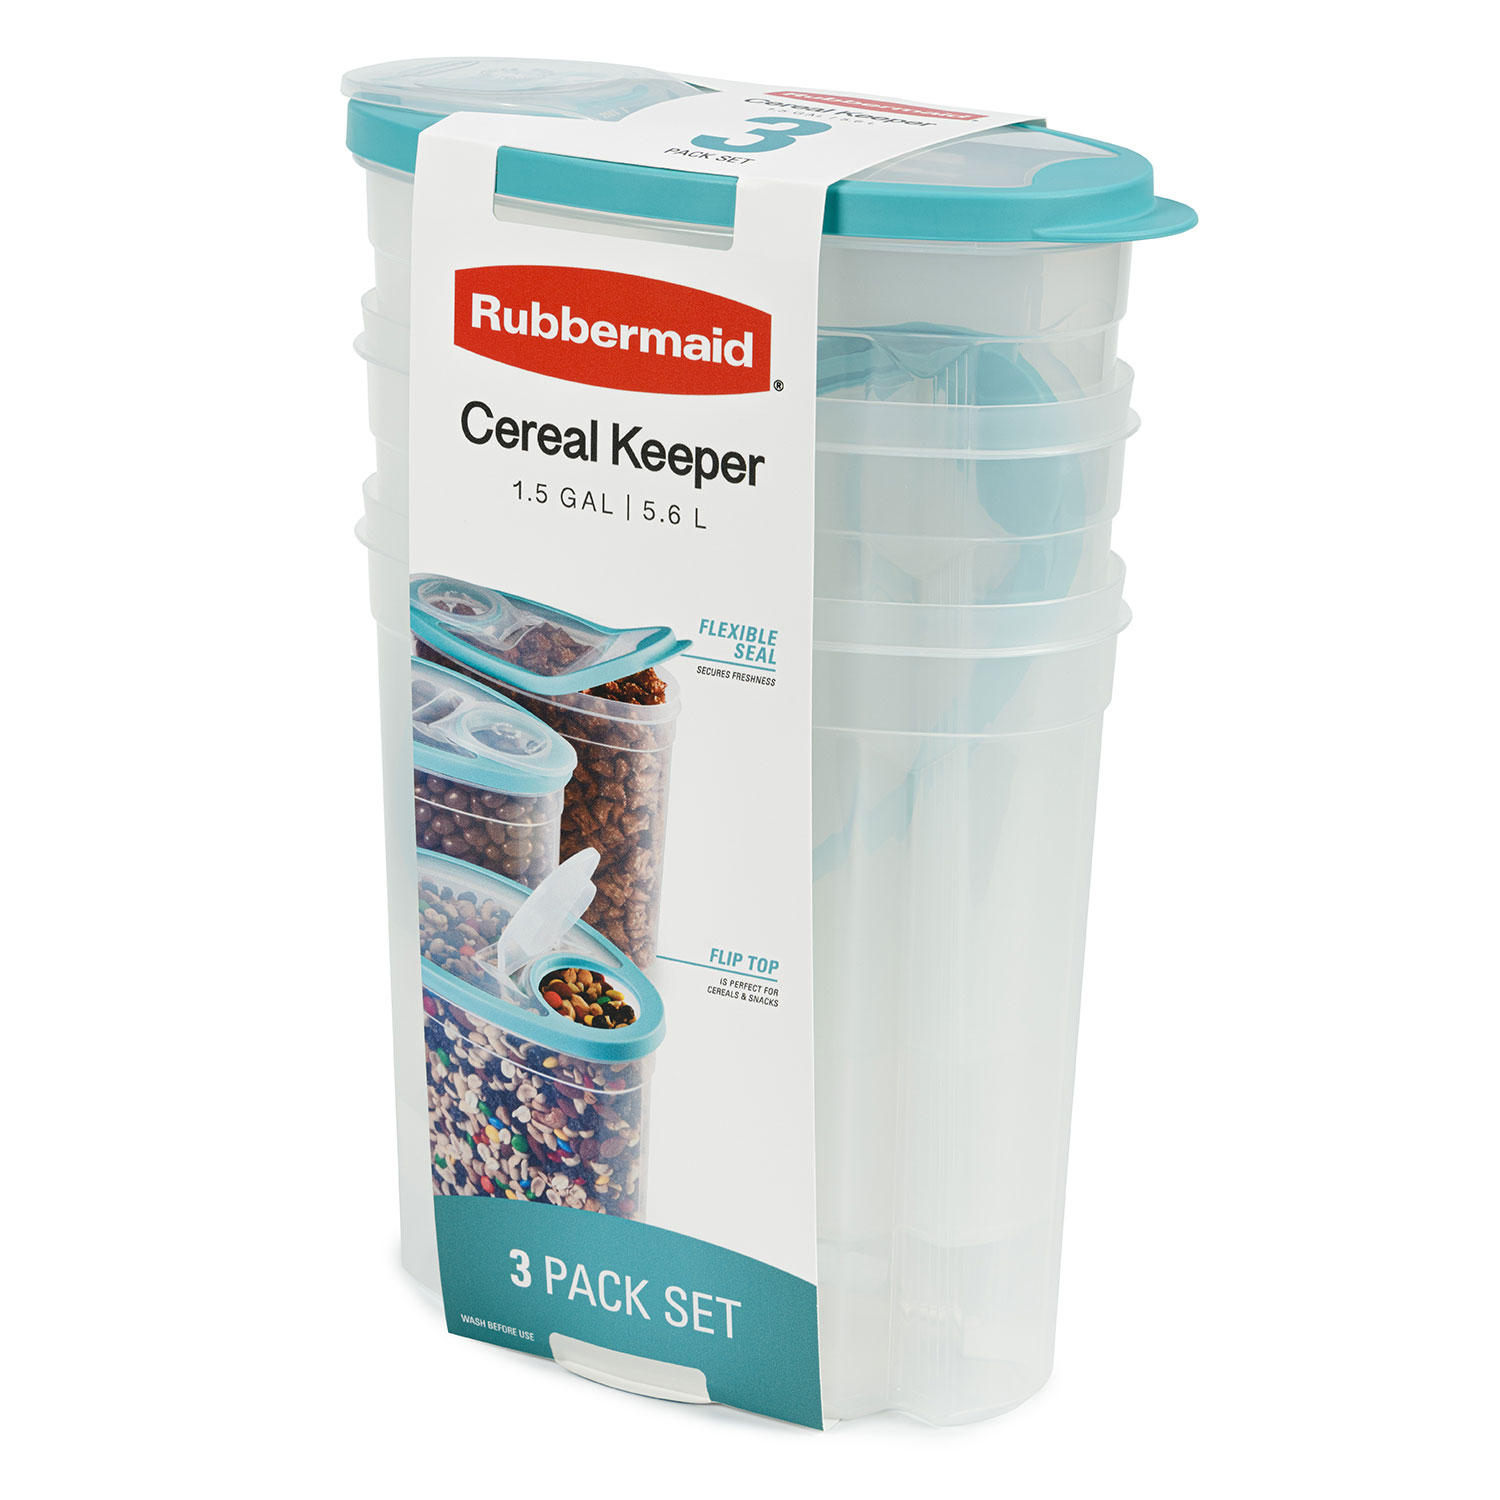 3-Pack Rubbermaid Cereal Keeper